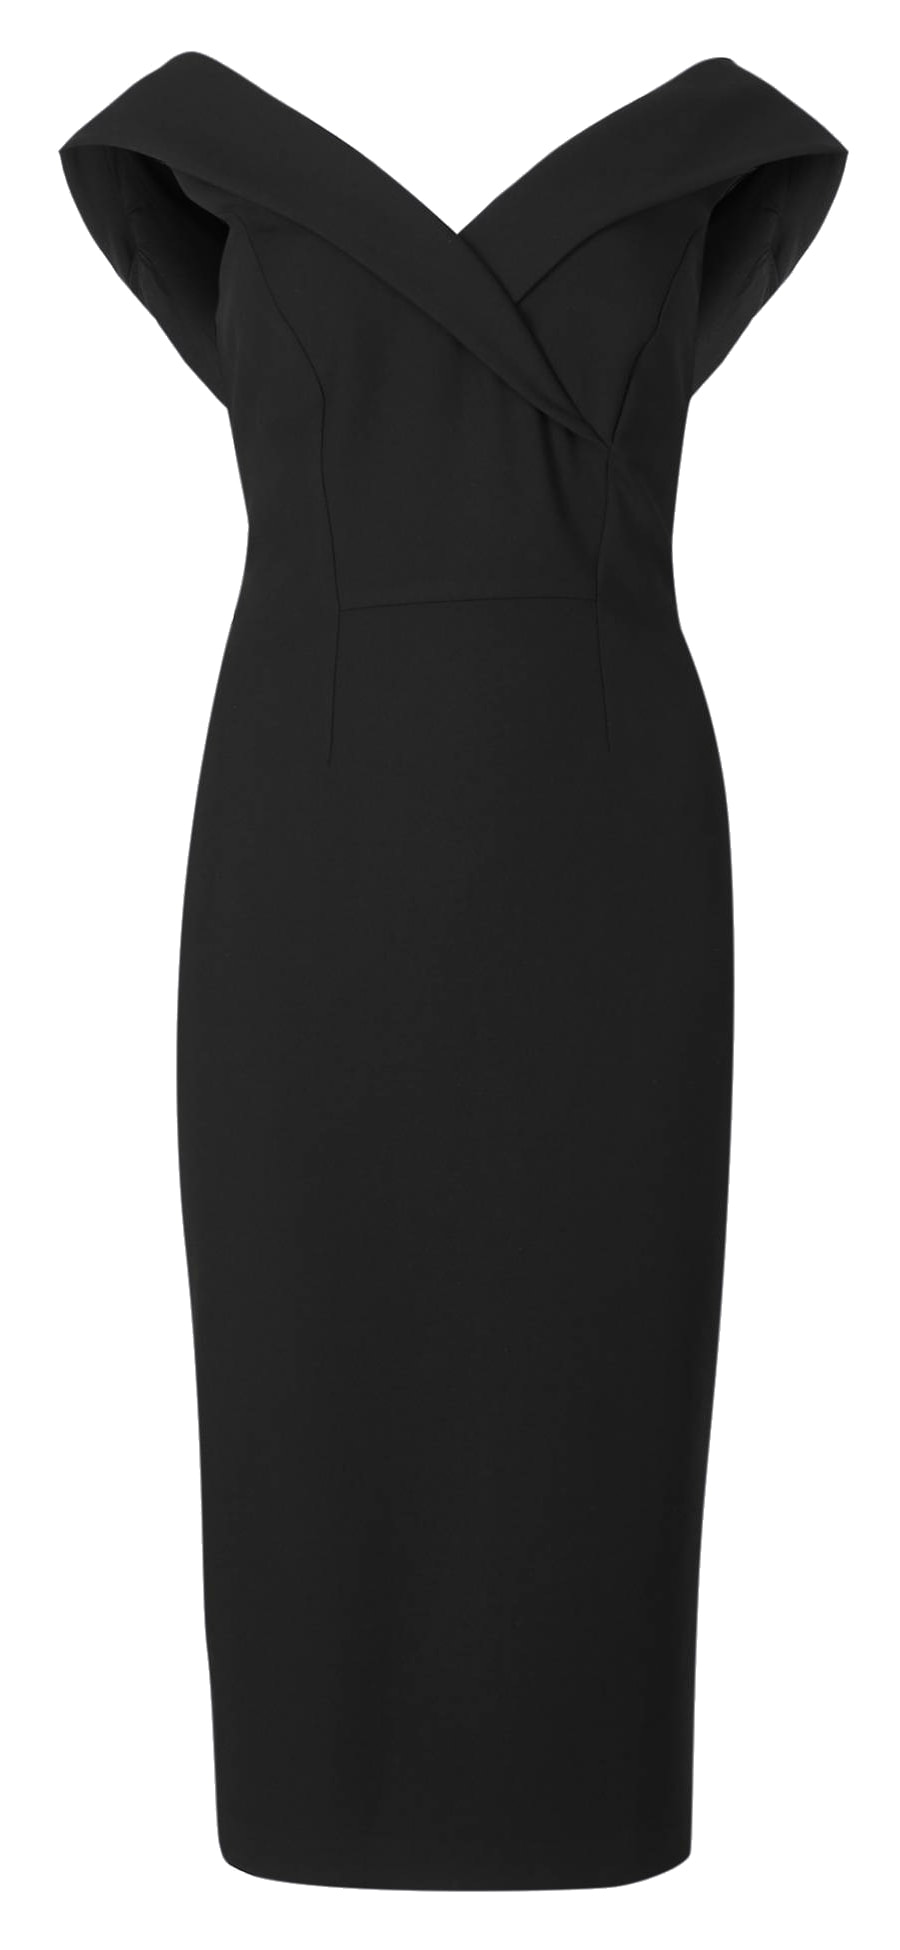 M&S Collection Black Double Crepe Bodycon Dress